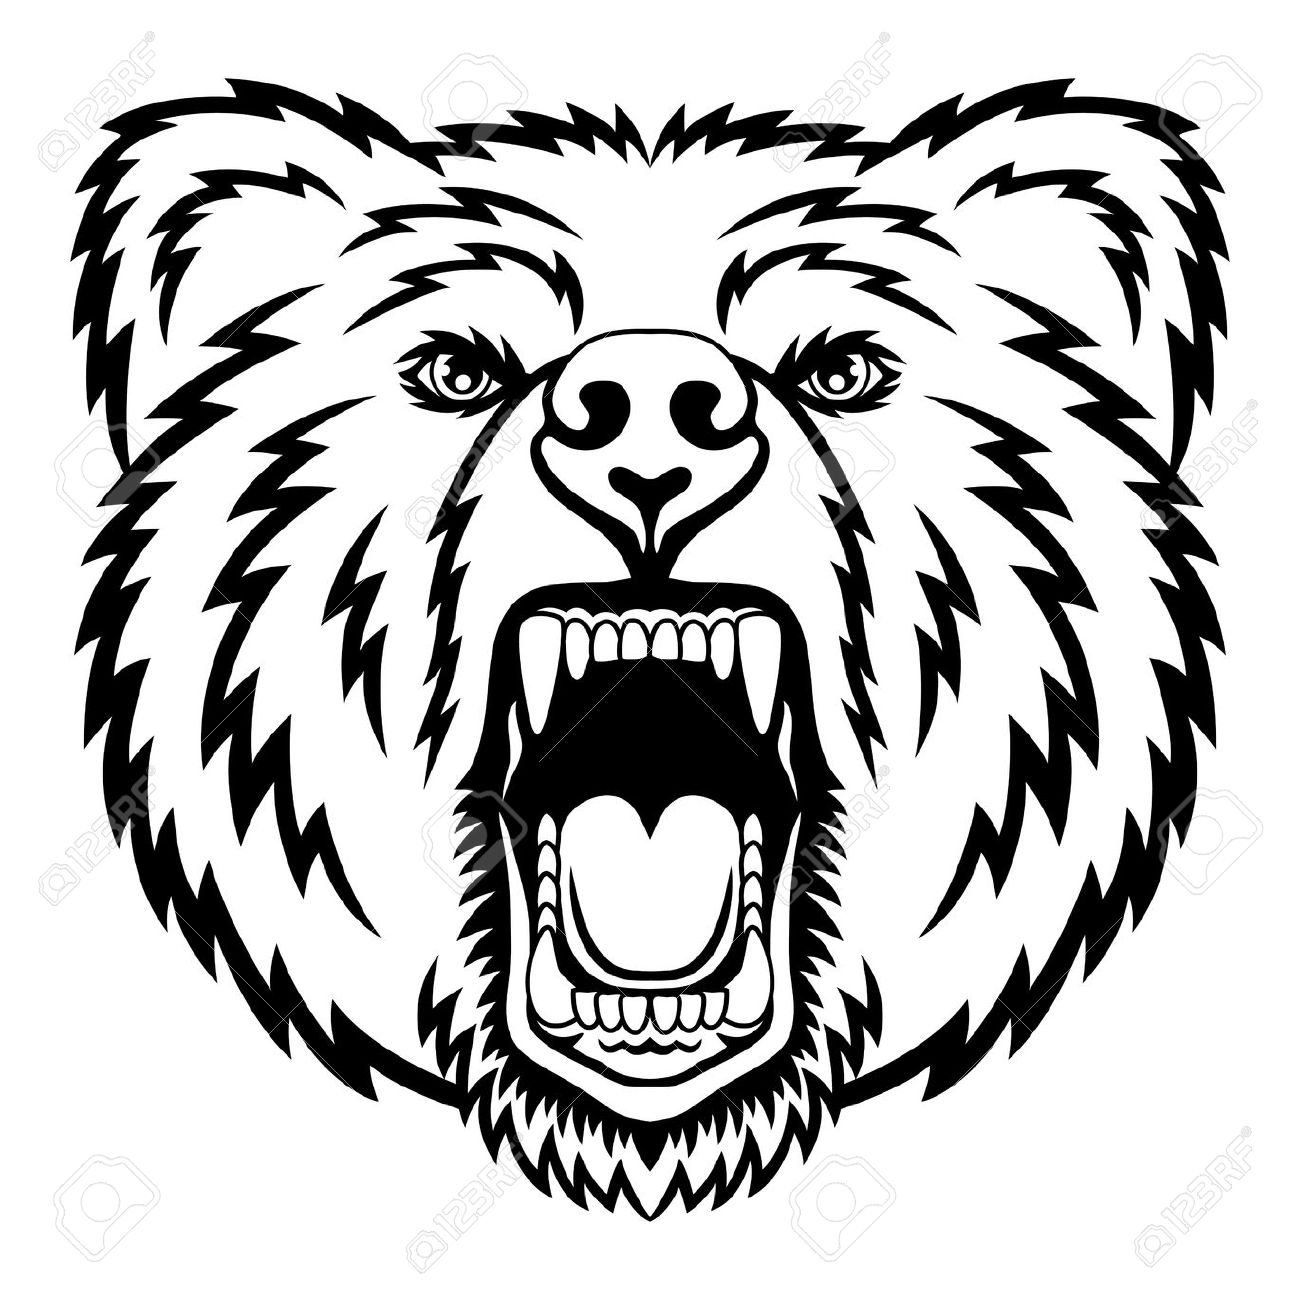 Grizzly Bear Head Drawing at GetDrawings.com | Free for personal use ...